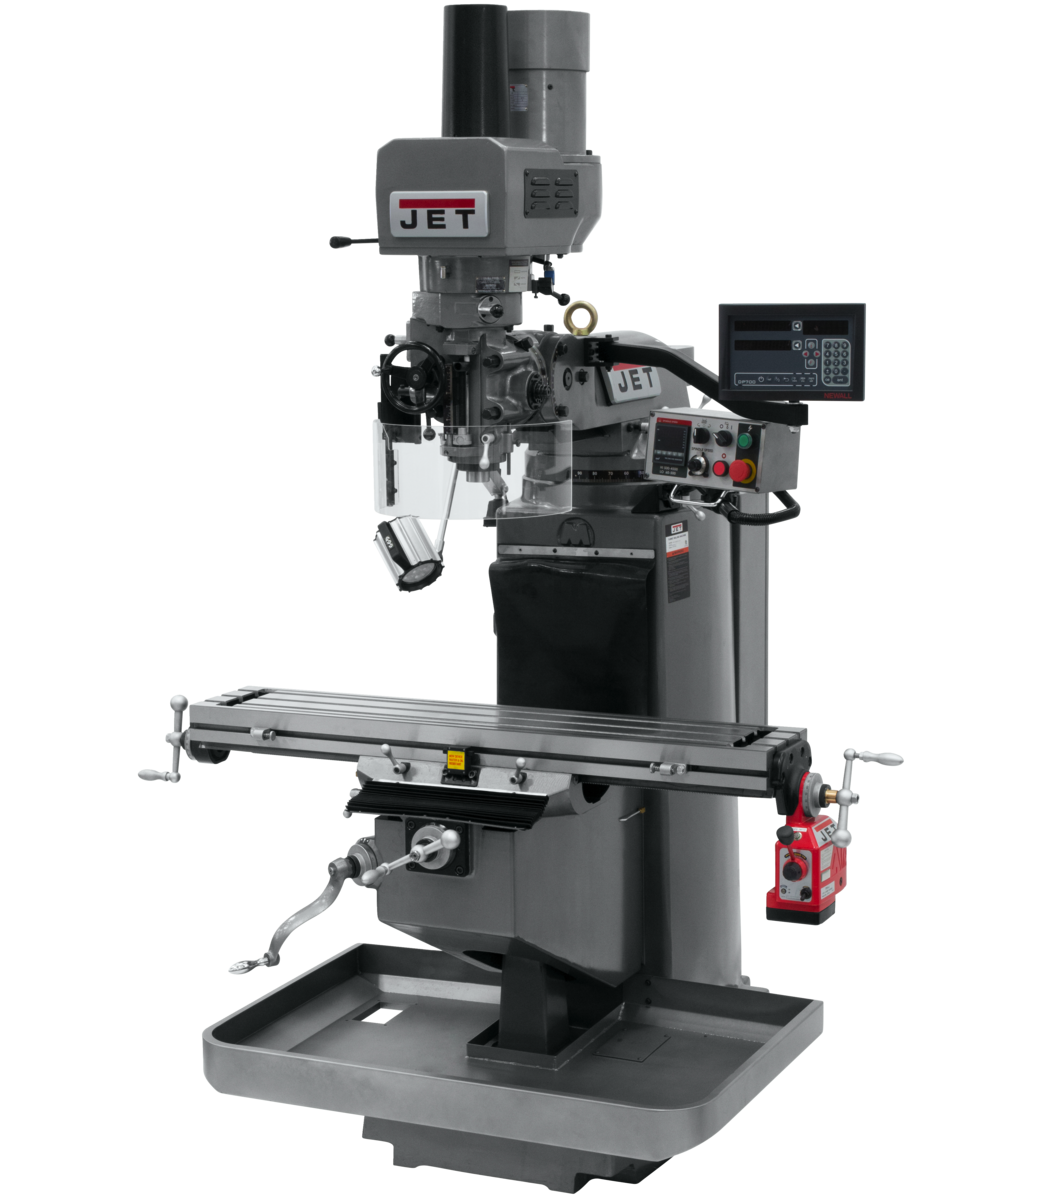 JTM-949EVS Mill With 3-Axis Newall DP700 DRO (Knee) With X-Axis Powerfeed and Air Powered Draw Bar